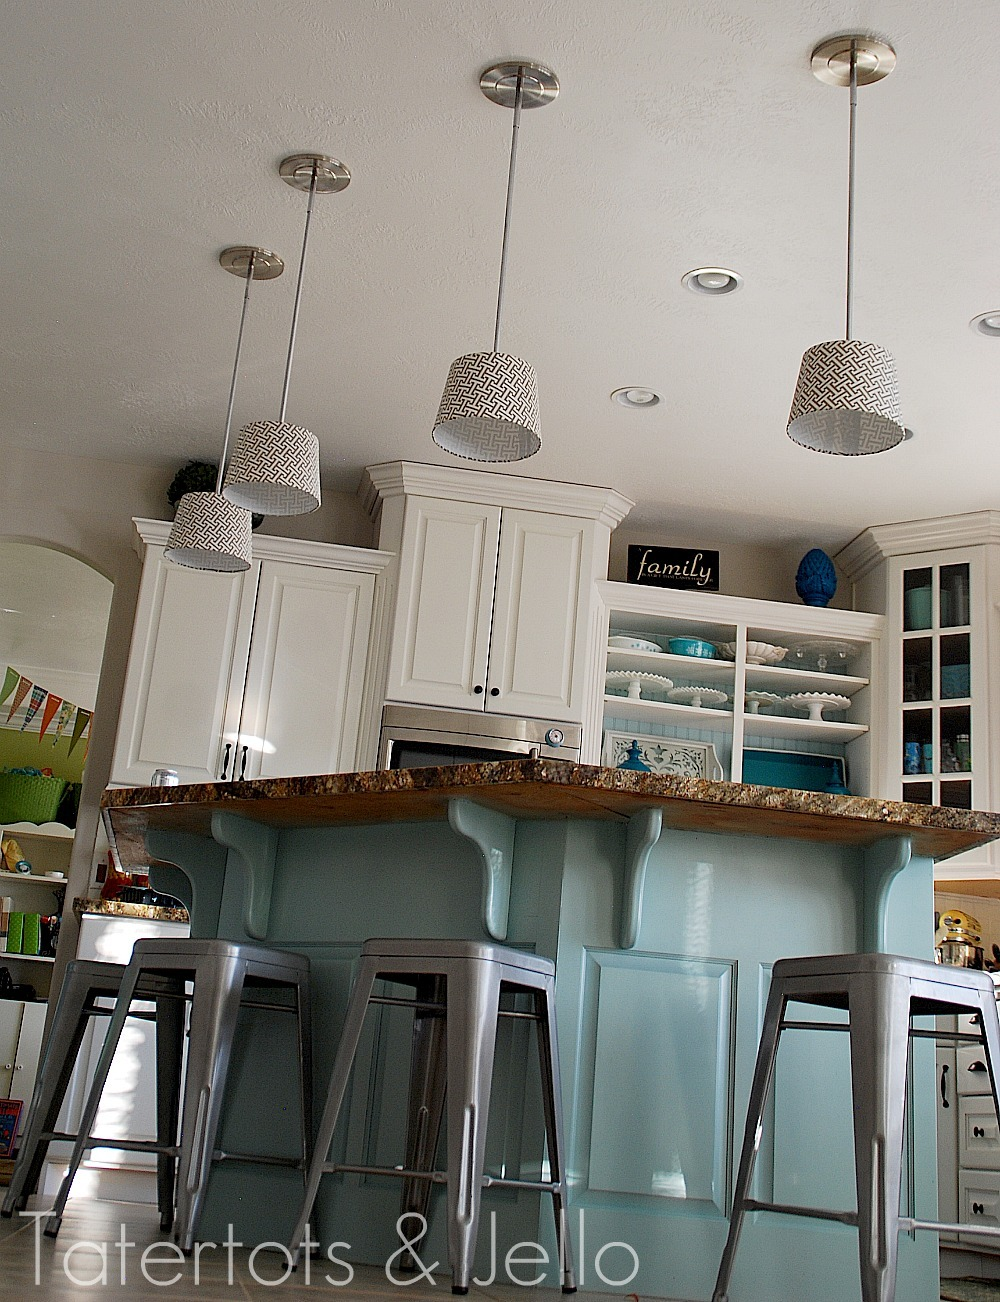 Make diy pendant lights kitchen remodel project tatertots and jello - Diy kitchen lighting ...